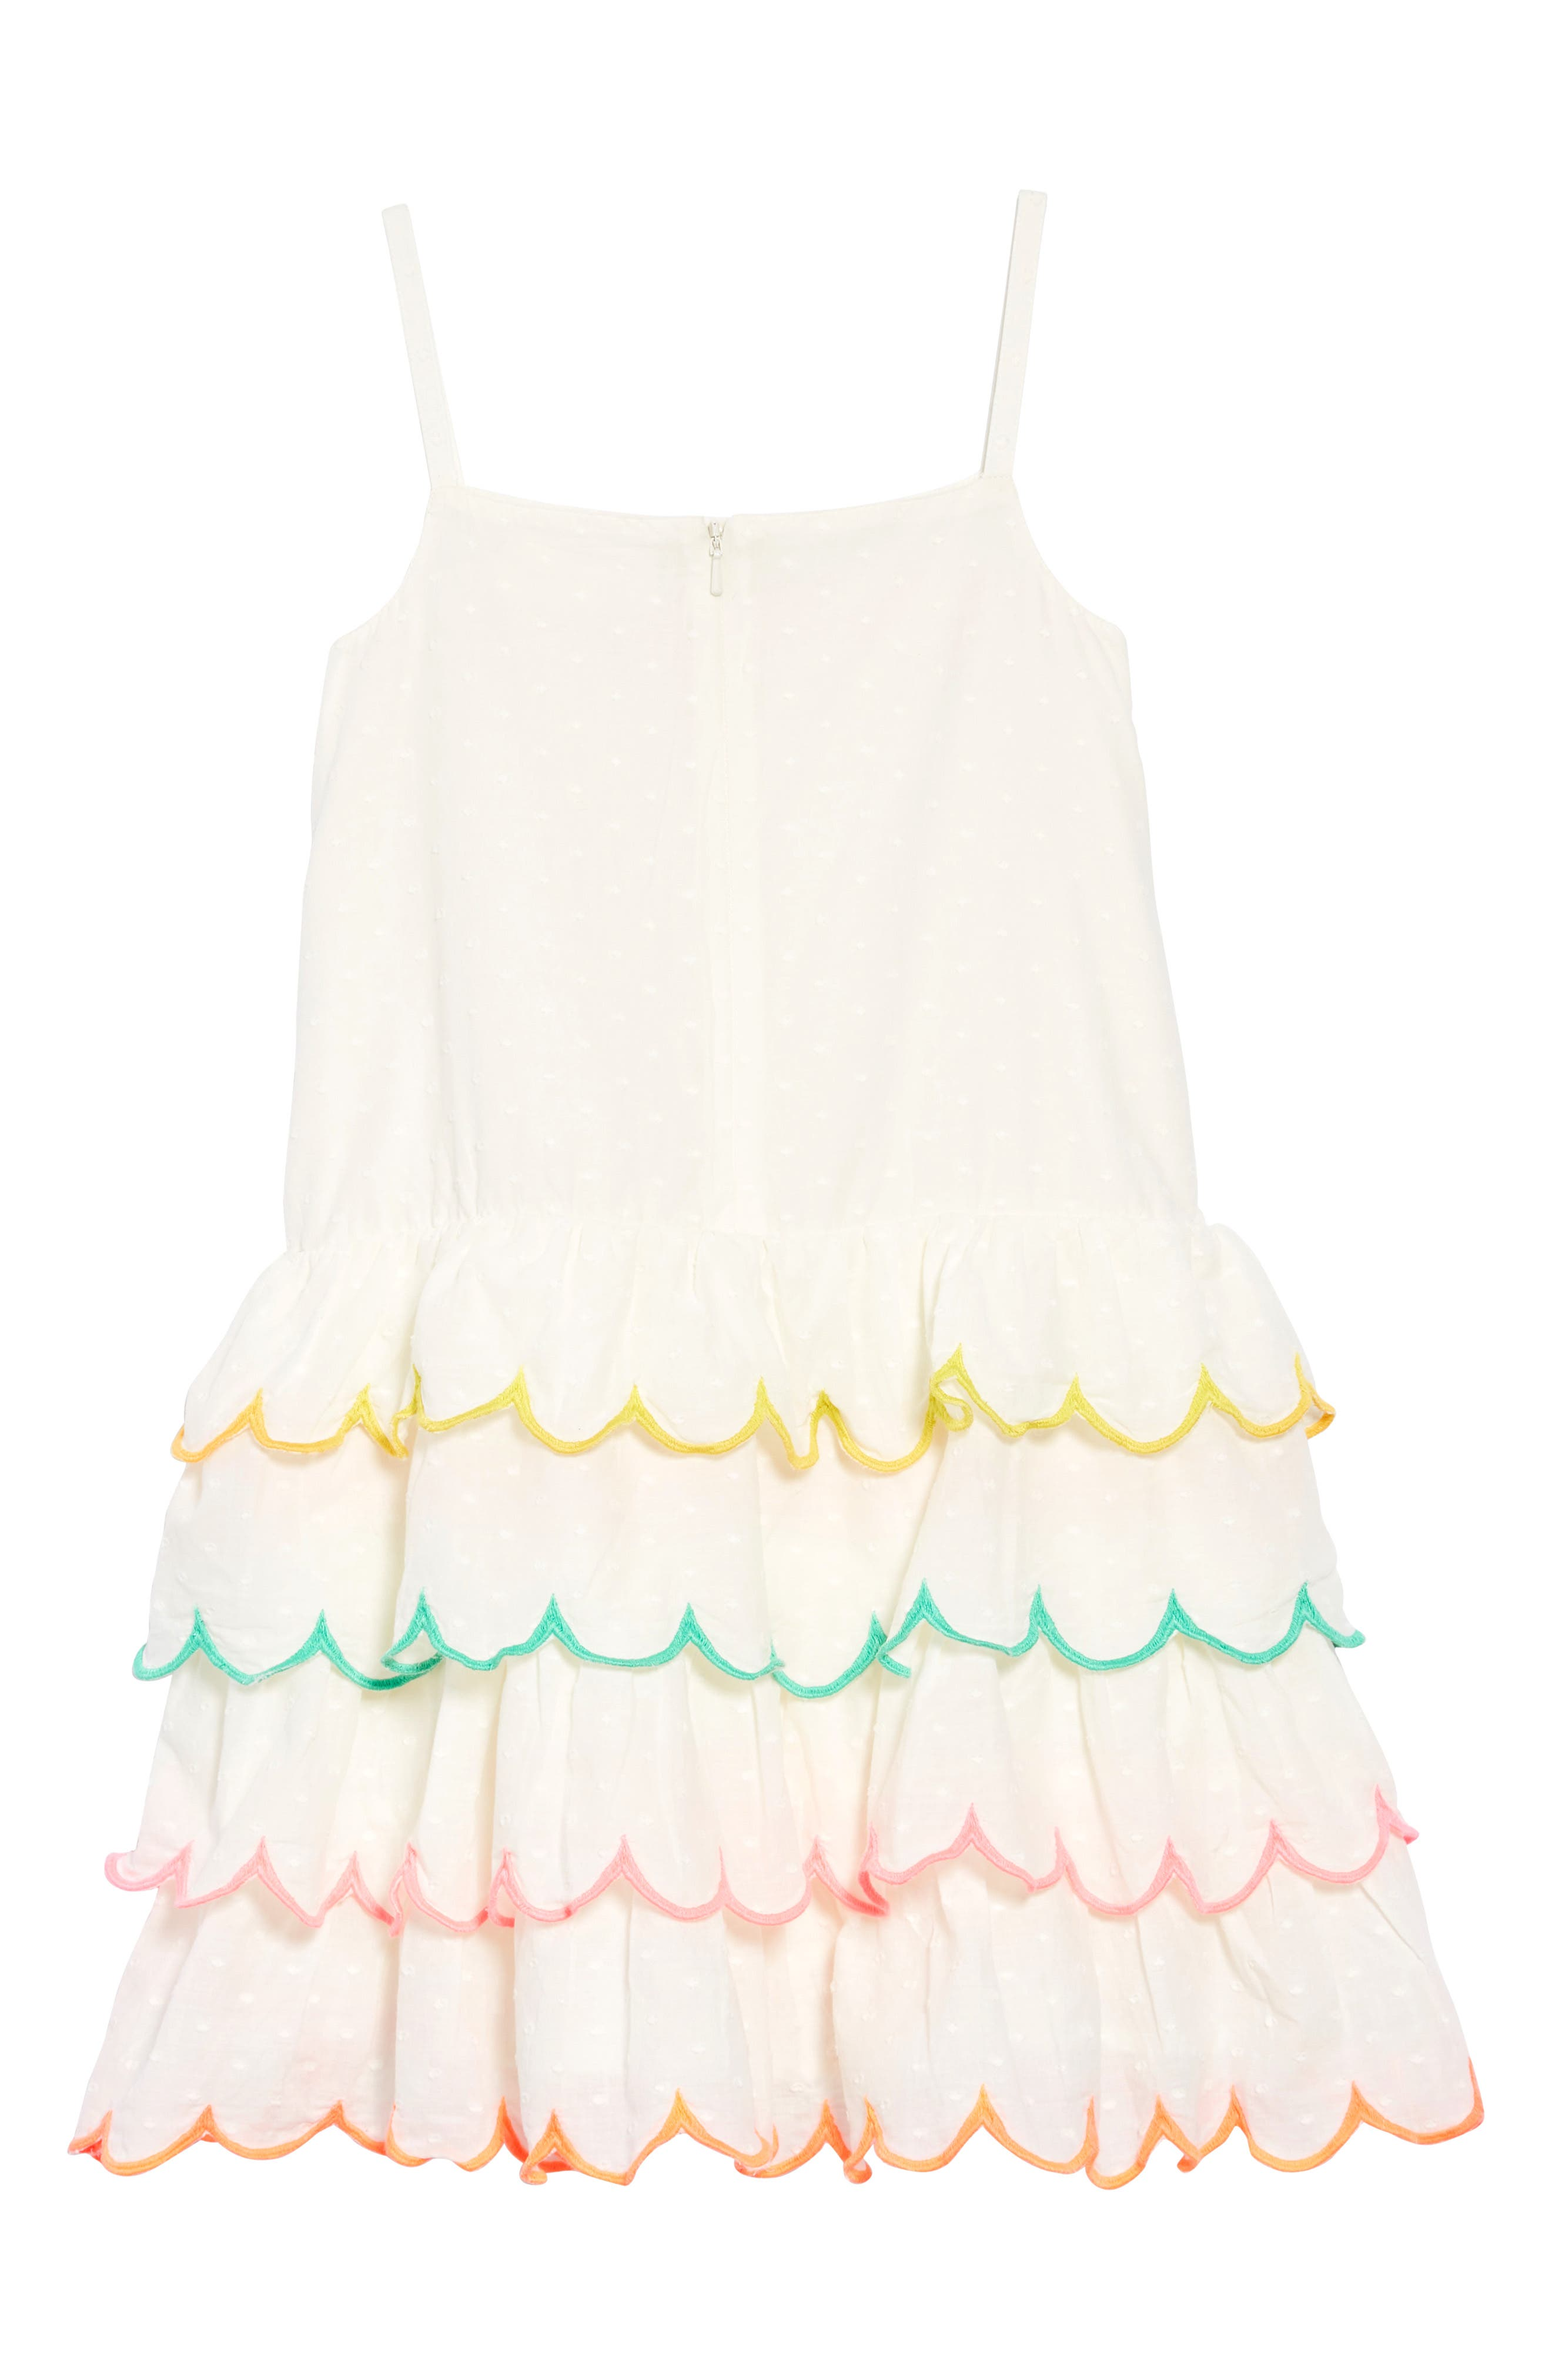 Tiered Scallop Dress,                             Alternate thumbnail 2, color,                             904